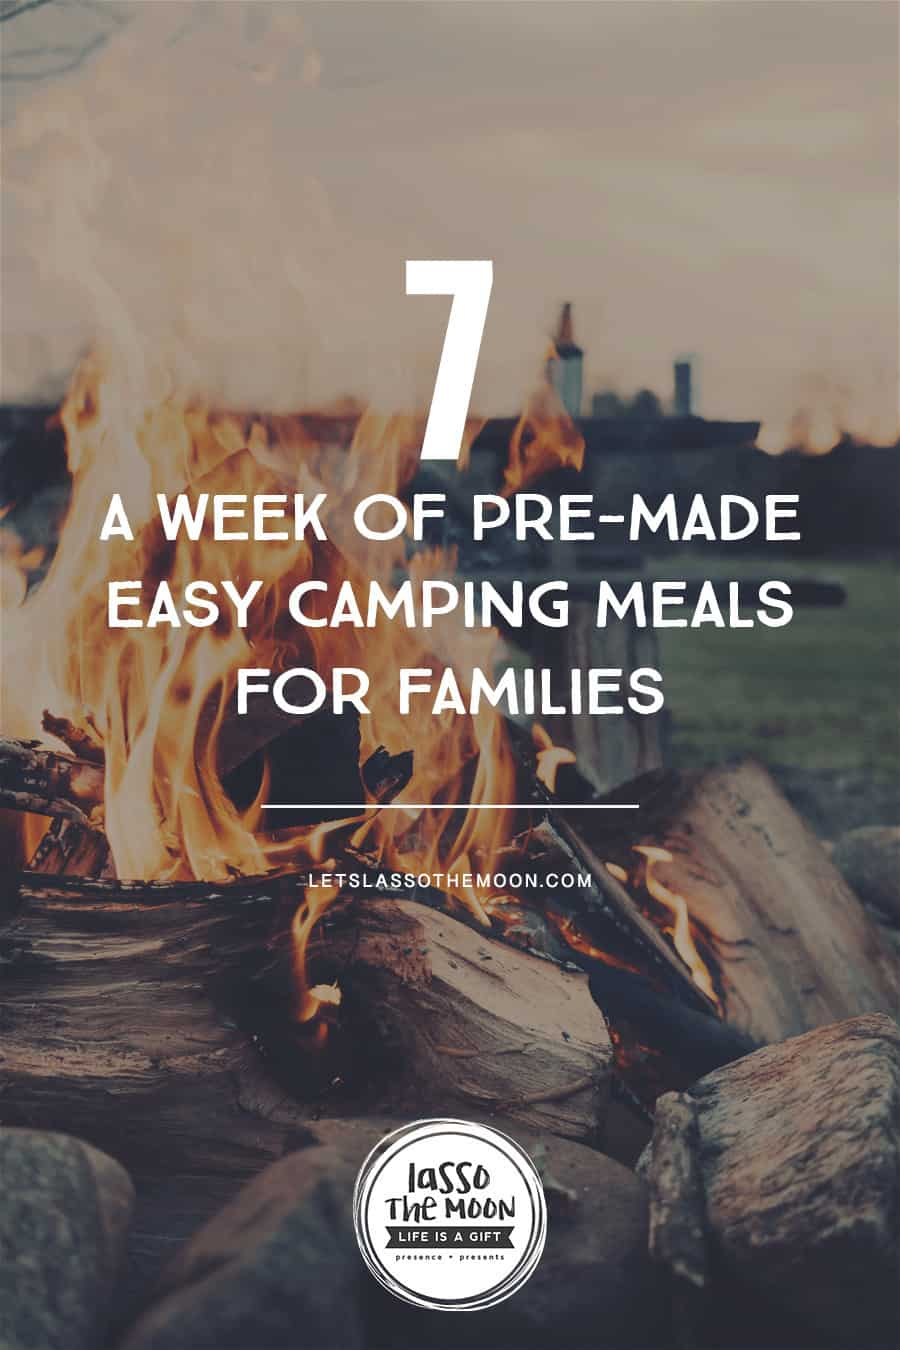 Here is a weeks worth of pre-made, delicious, easy camping dishes that are family friendly! #camping #campingmeals #familydinner *Great list of camping meals